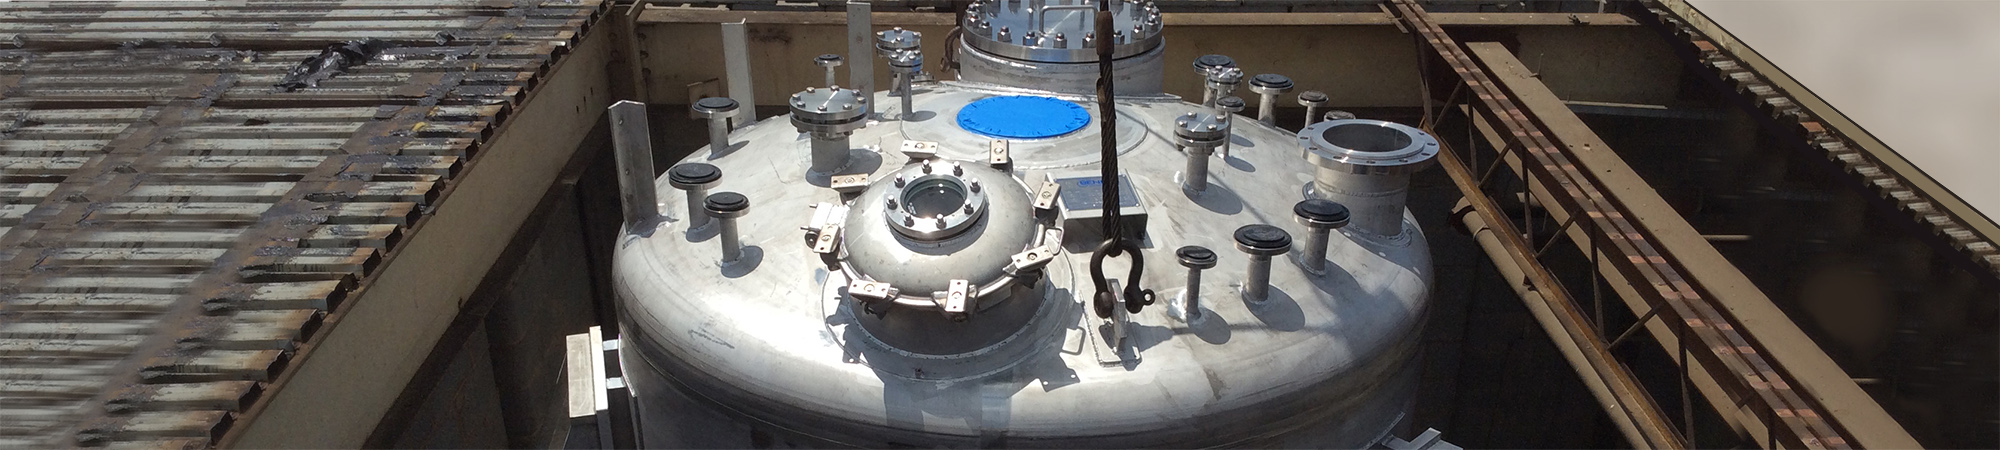 Reactors Engineering Fabrication Services